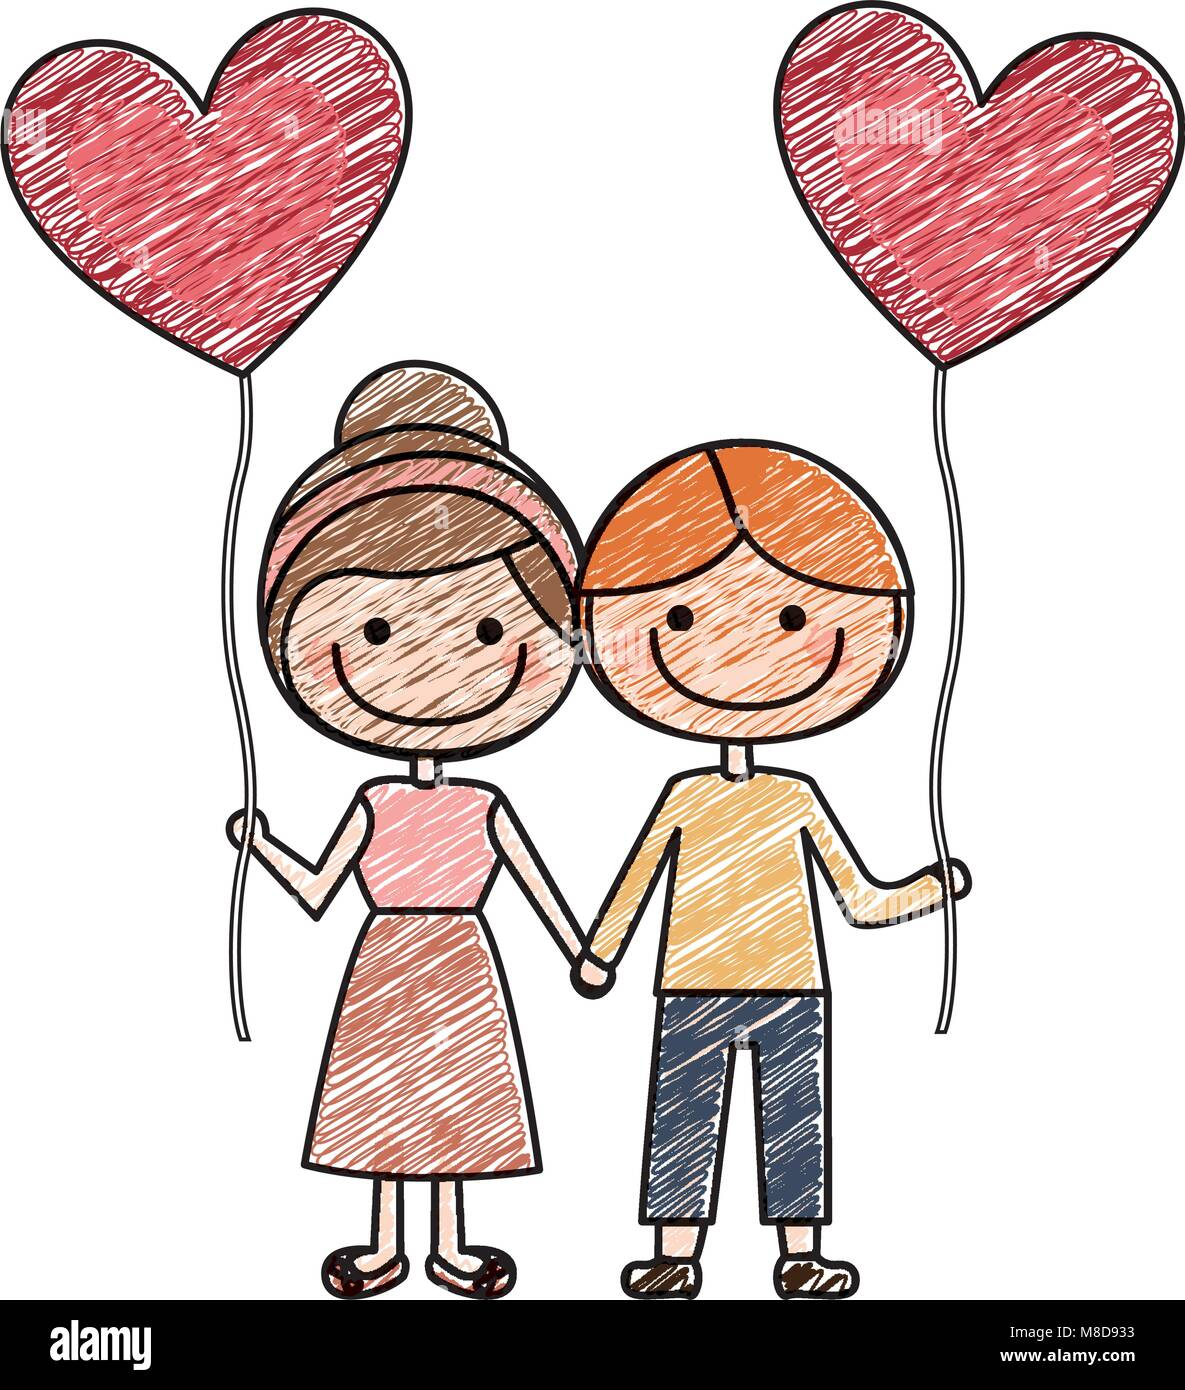 Color pencil drawing of caricature of boy and girl with balloon in shape of heart